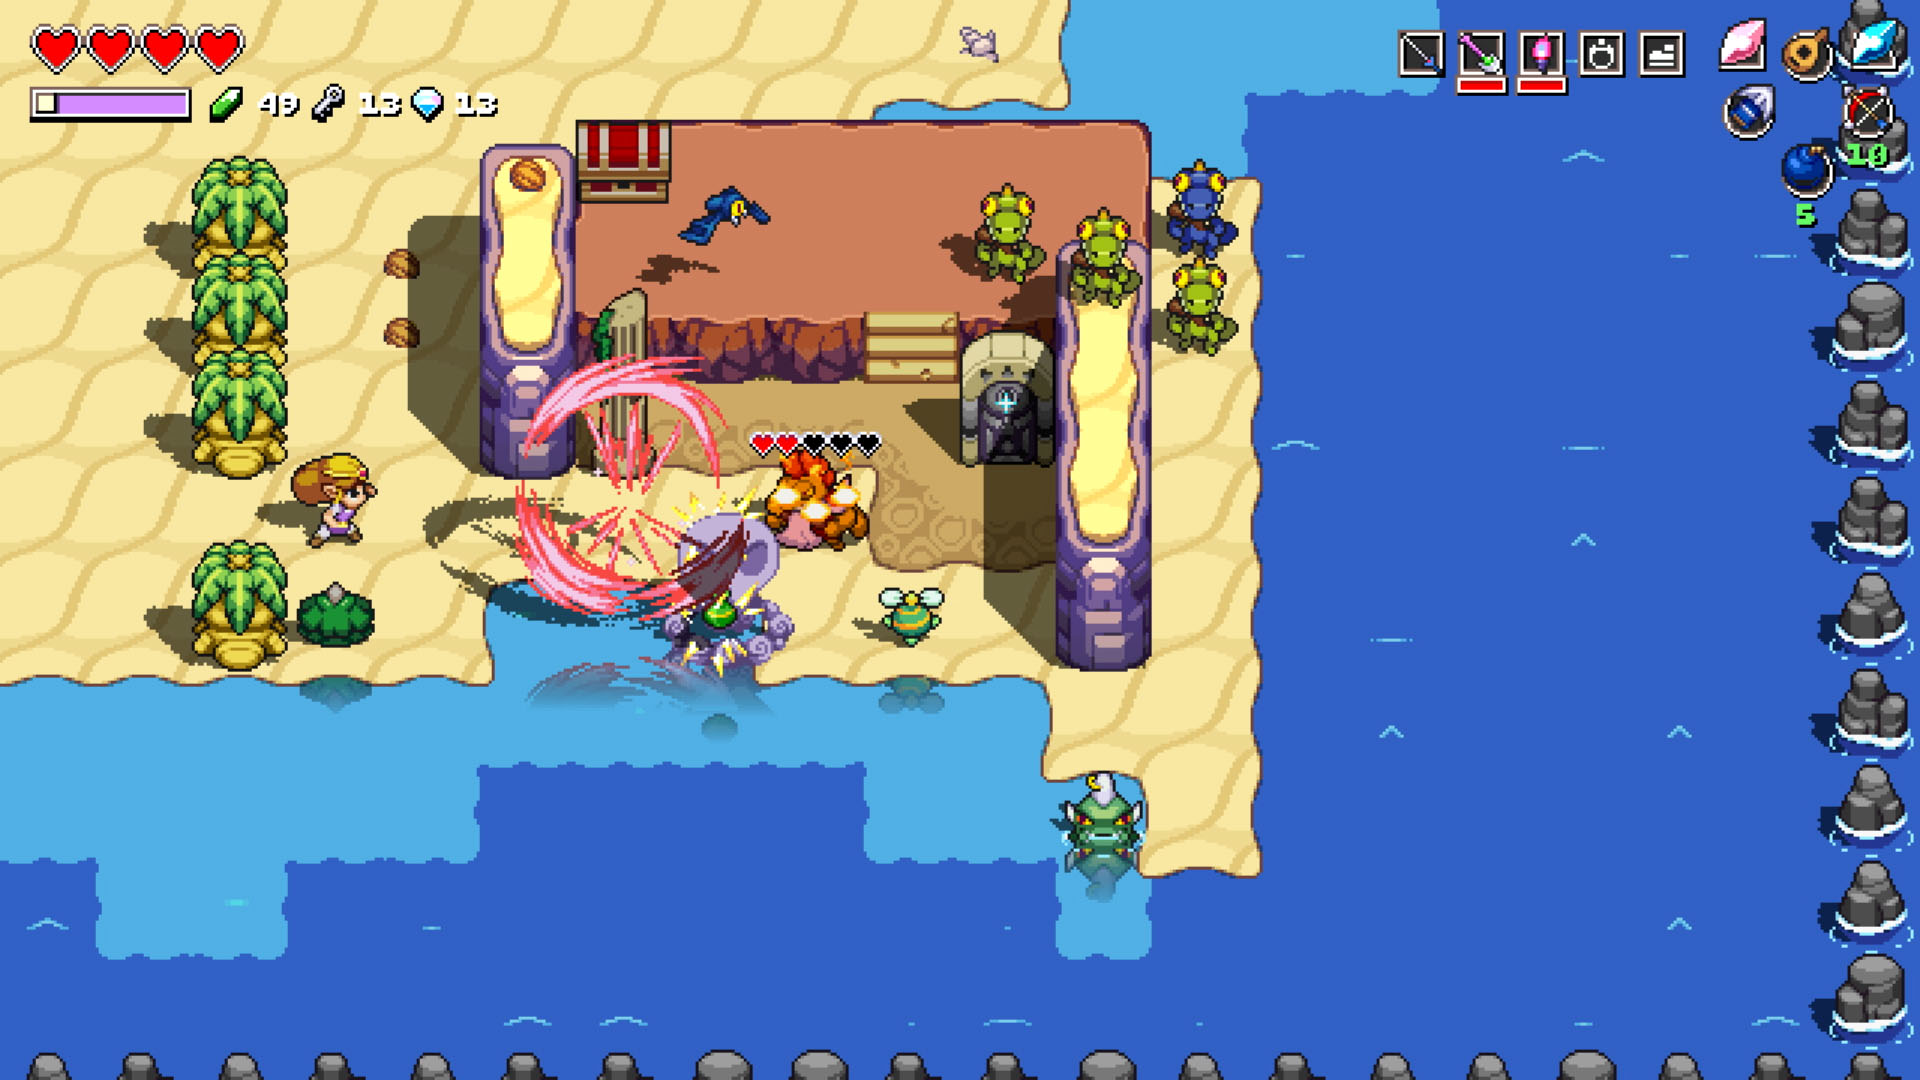 Cadence Of Hyrule Crypt Of The Necrodancer Featuring The Legend Of Zelda Nintendo Switch Download Software Games Nintendo